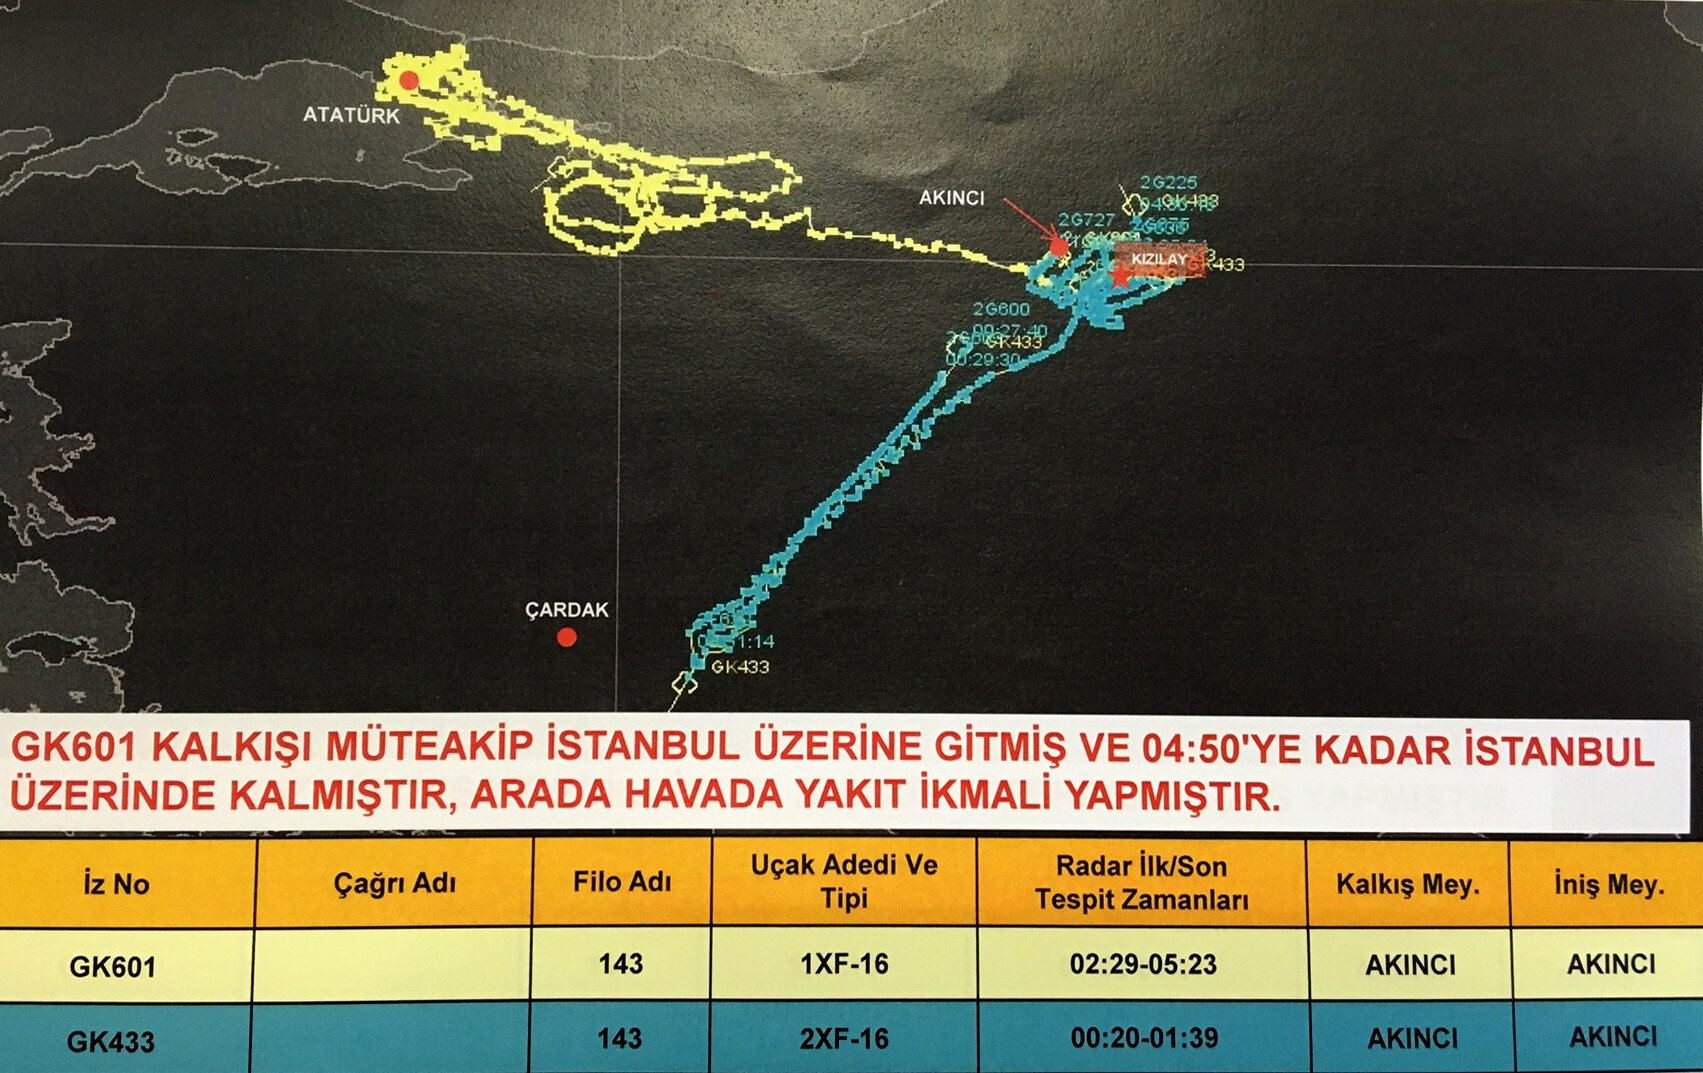 According to flight records, there was heavy air traffic in the skies above Istanbul and Ankara.